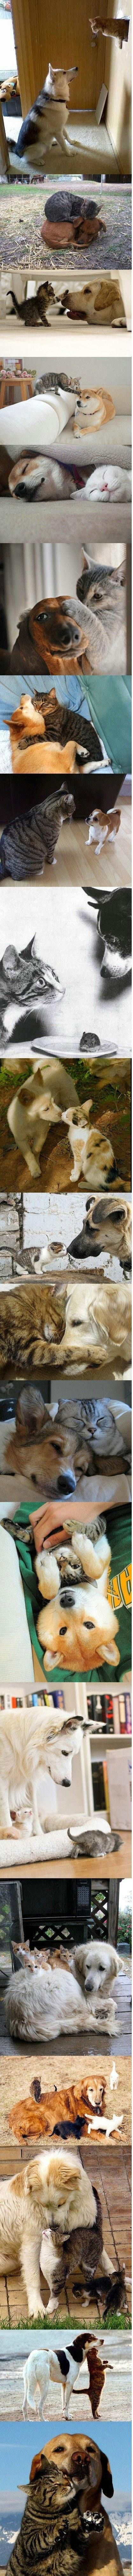 dogs and cats!: